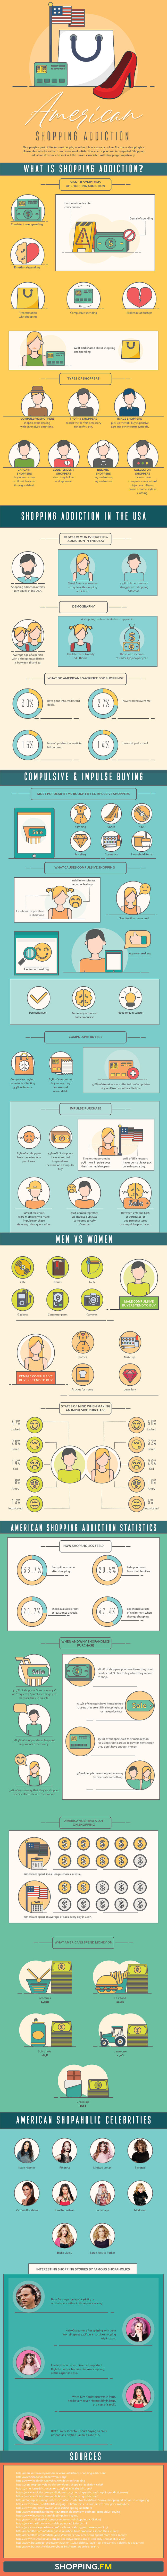 Shopping.fm's infographic looks at how shopping addiction affects the American population